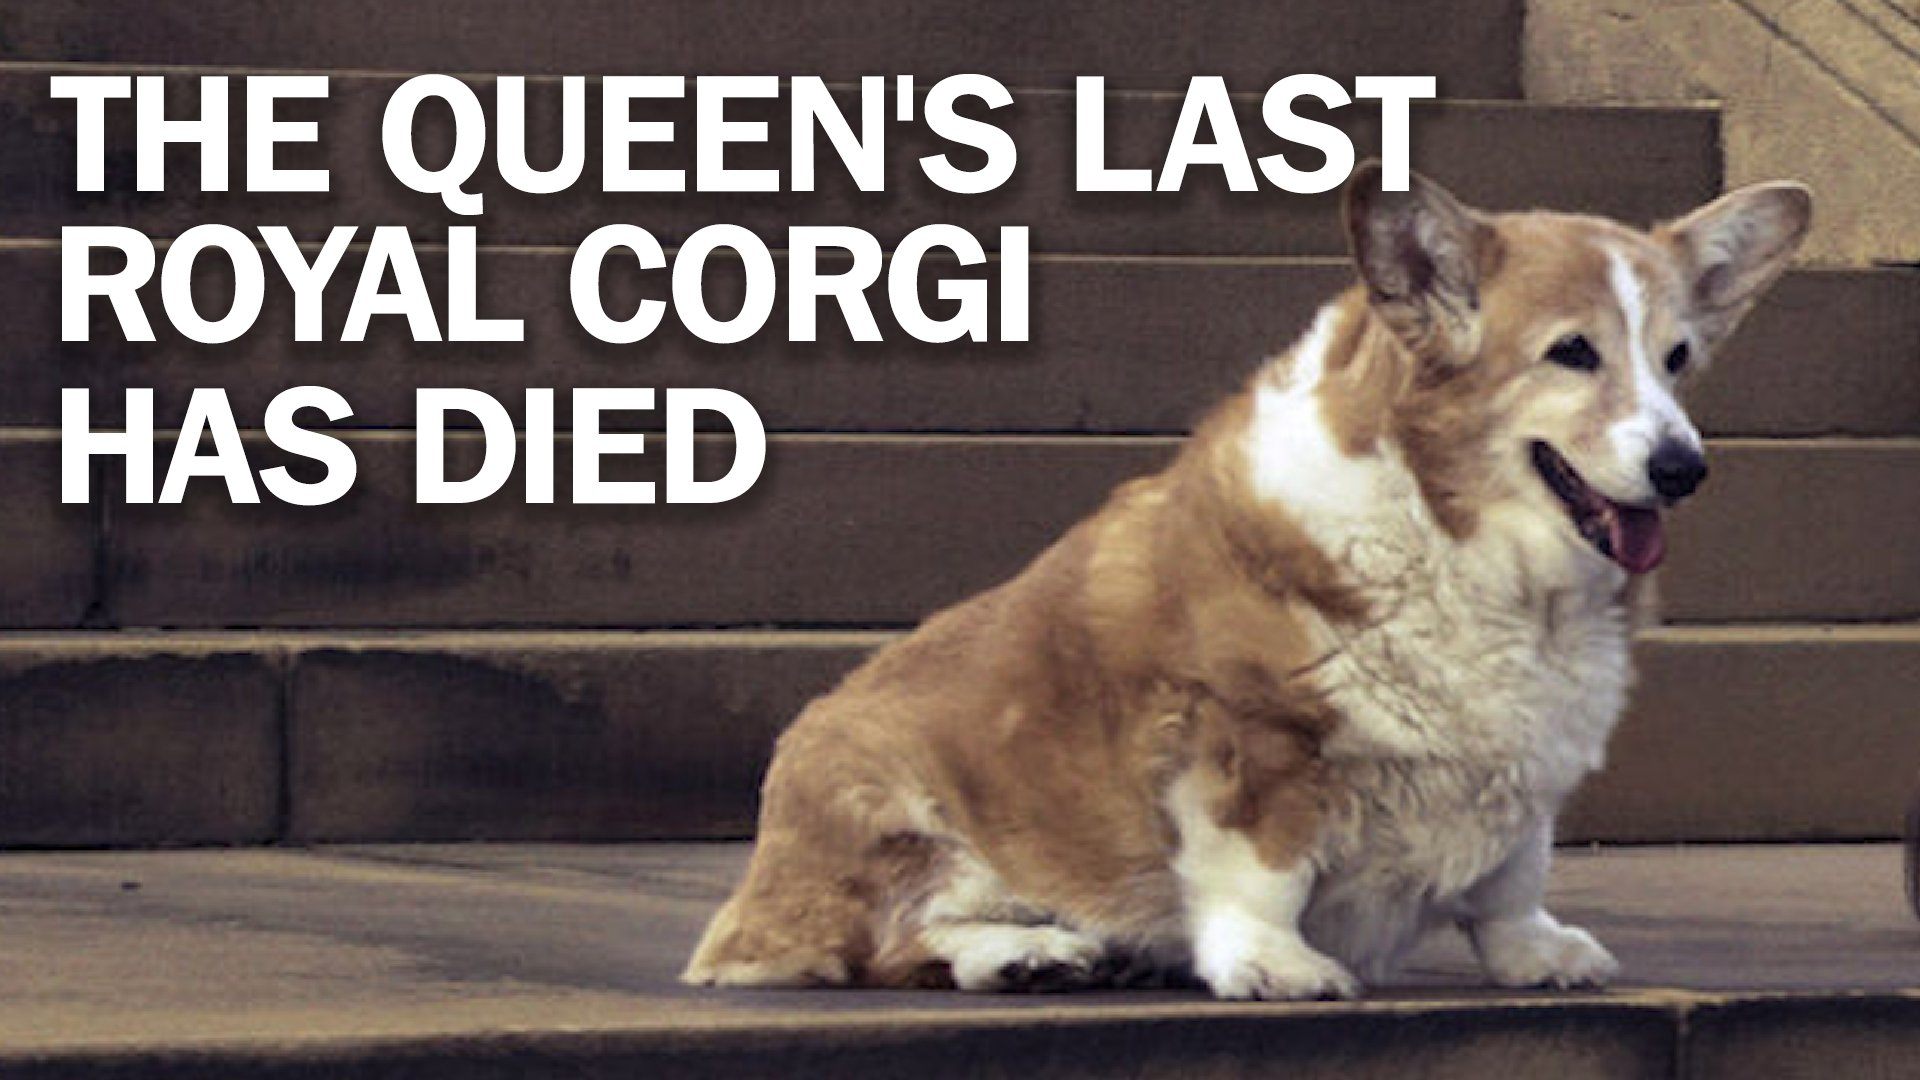 Queen Elizabeth lost the last of her beloved corgi dogs this weekend https://t.co/NhQ1ecGiZG https://t.co/jrsMDVInTJ